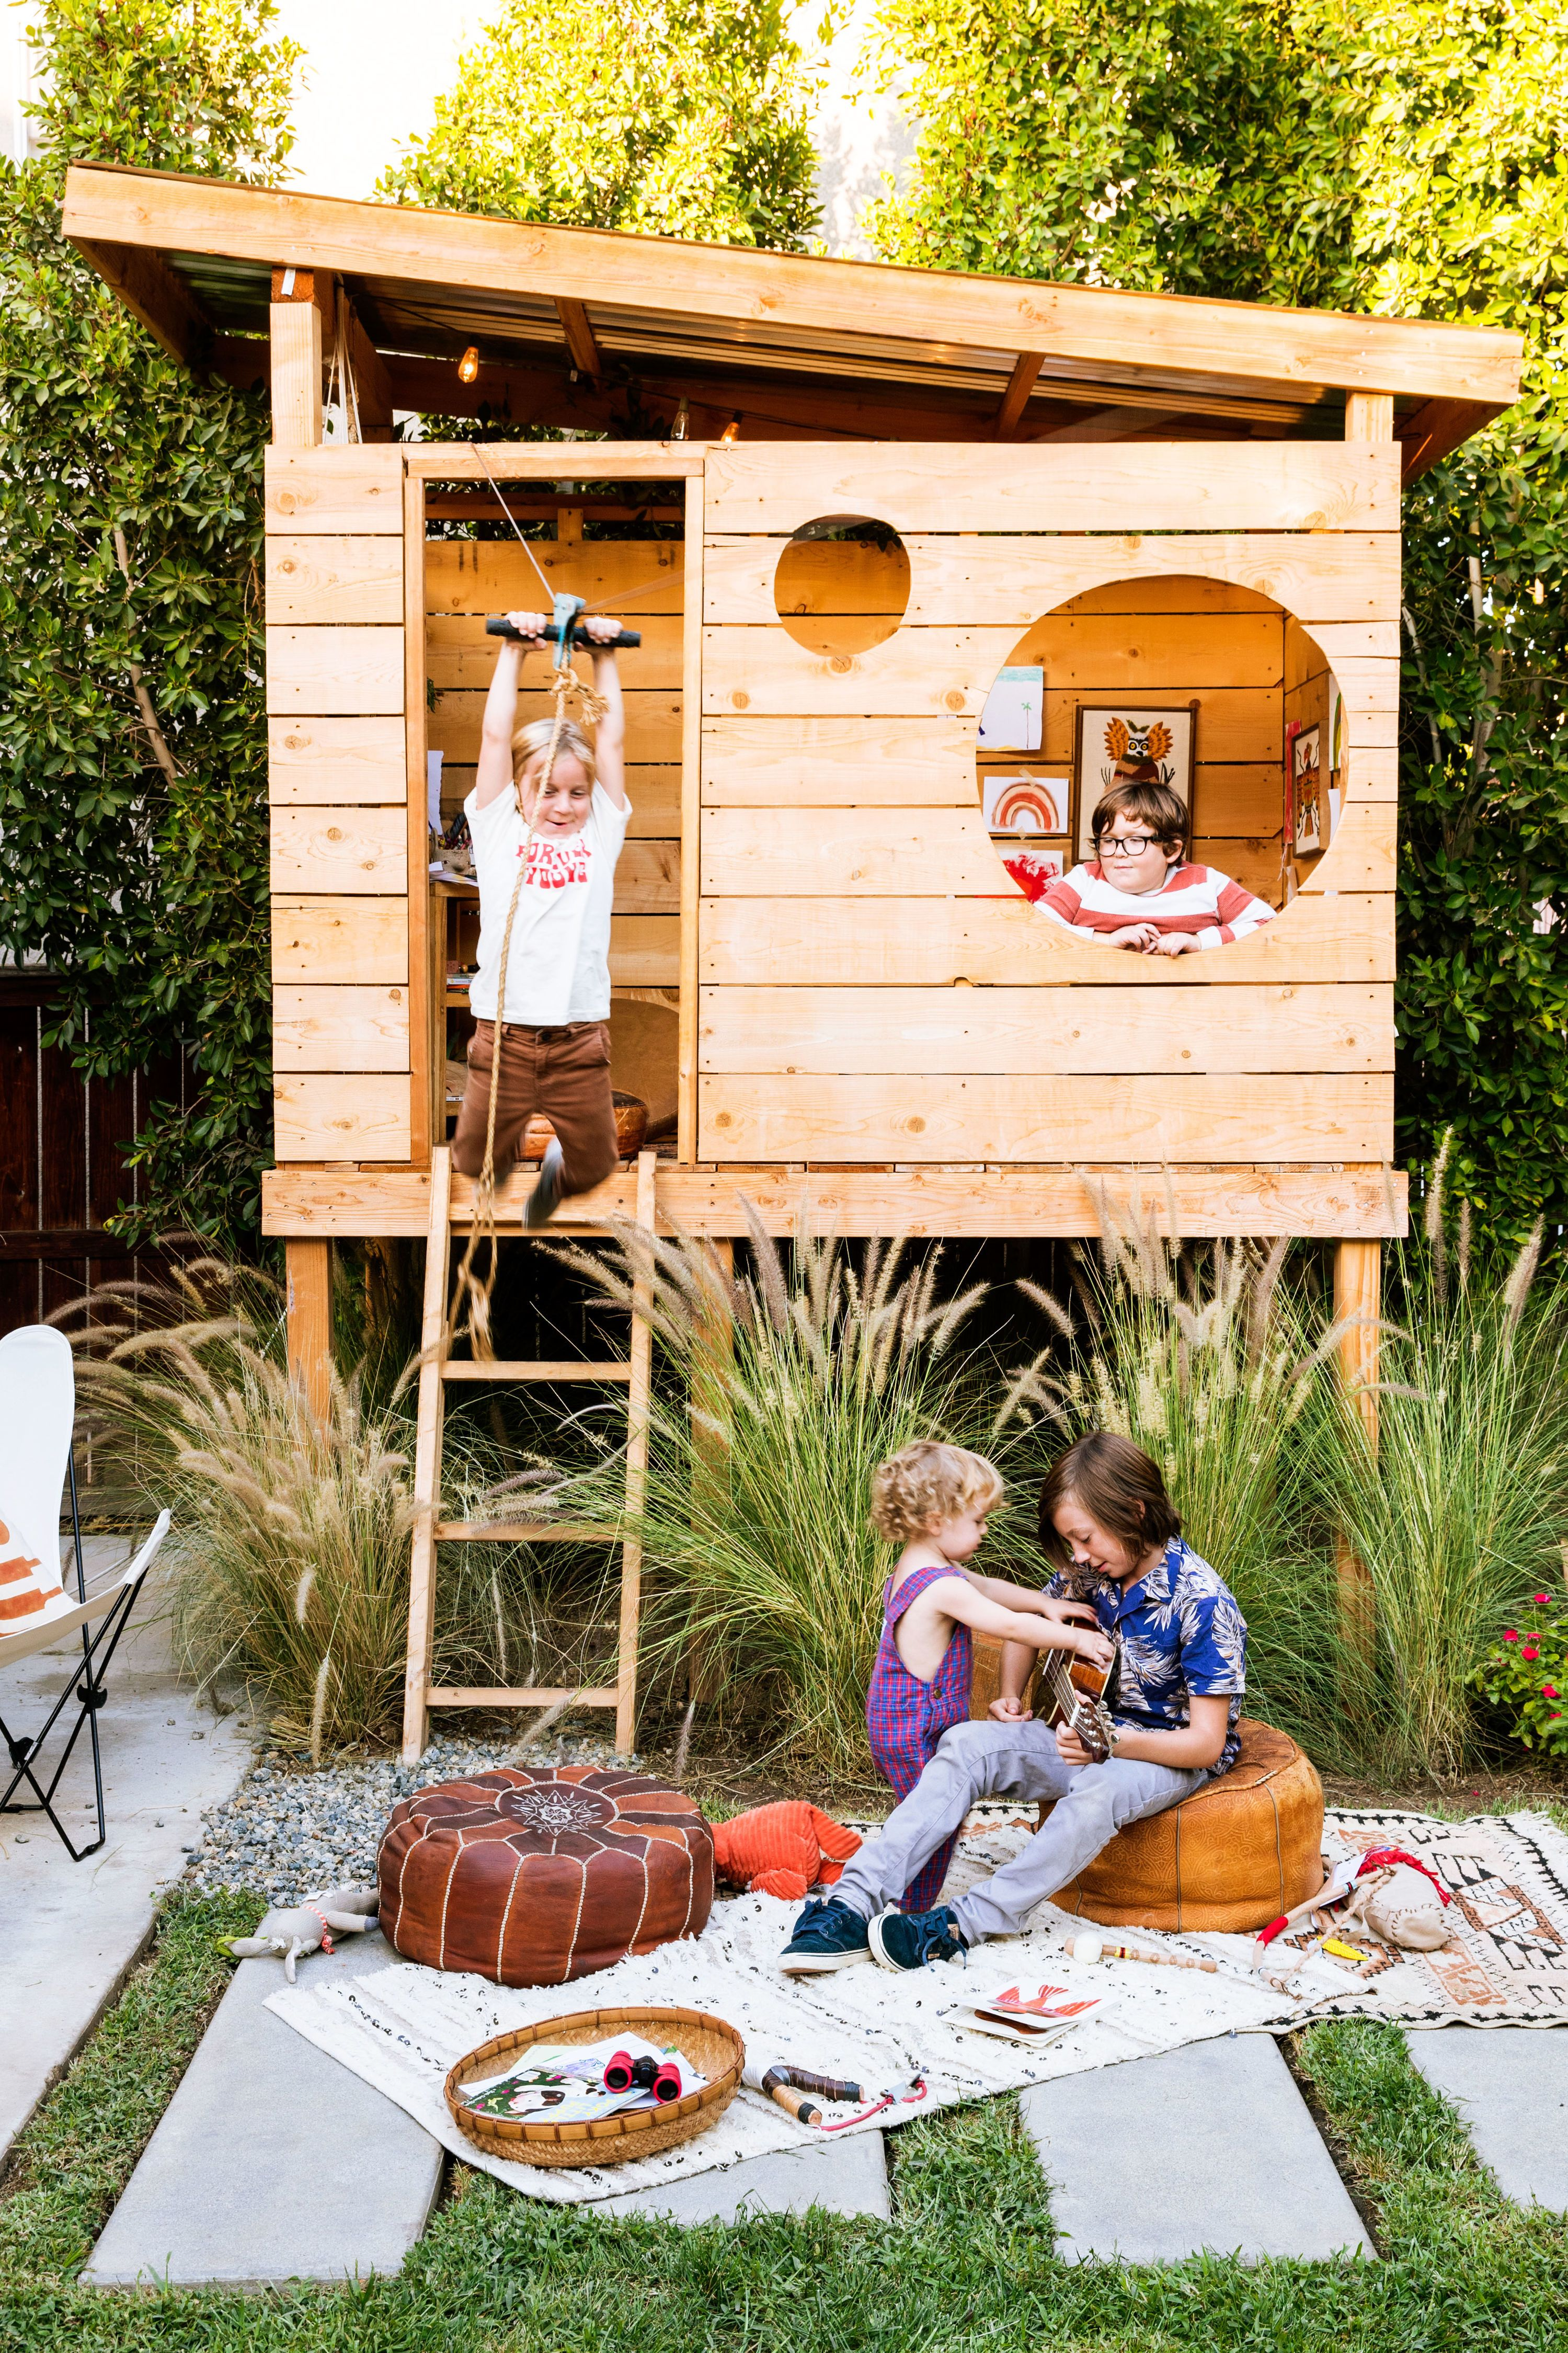 Make a plan | Kids playhouse | Pinterest | Casa árbol, Terrazas y Camas